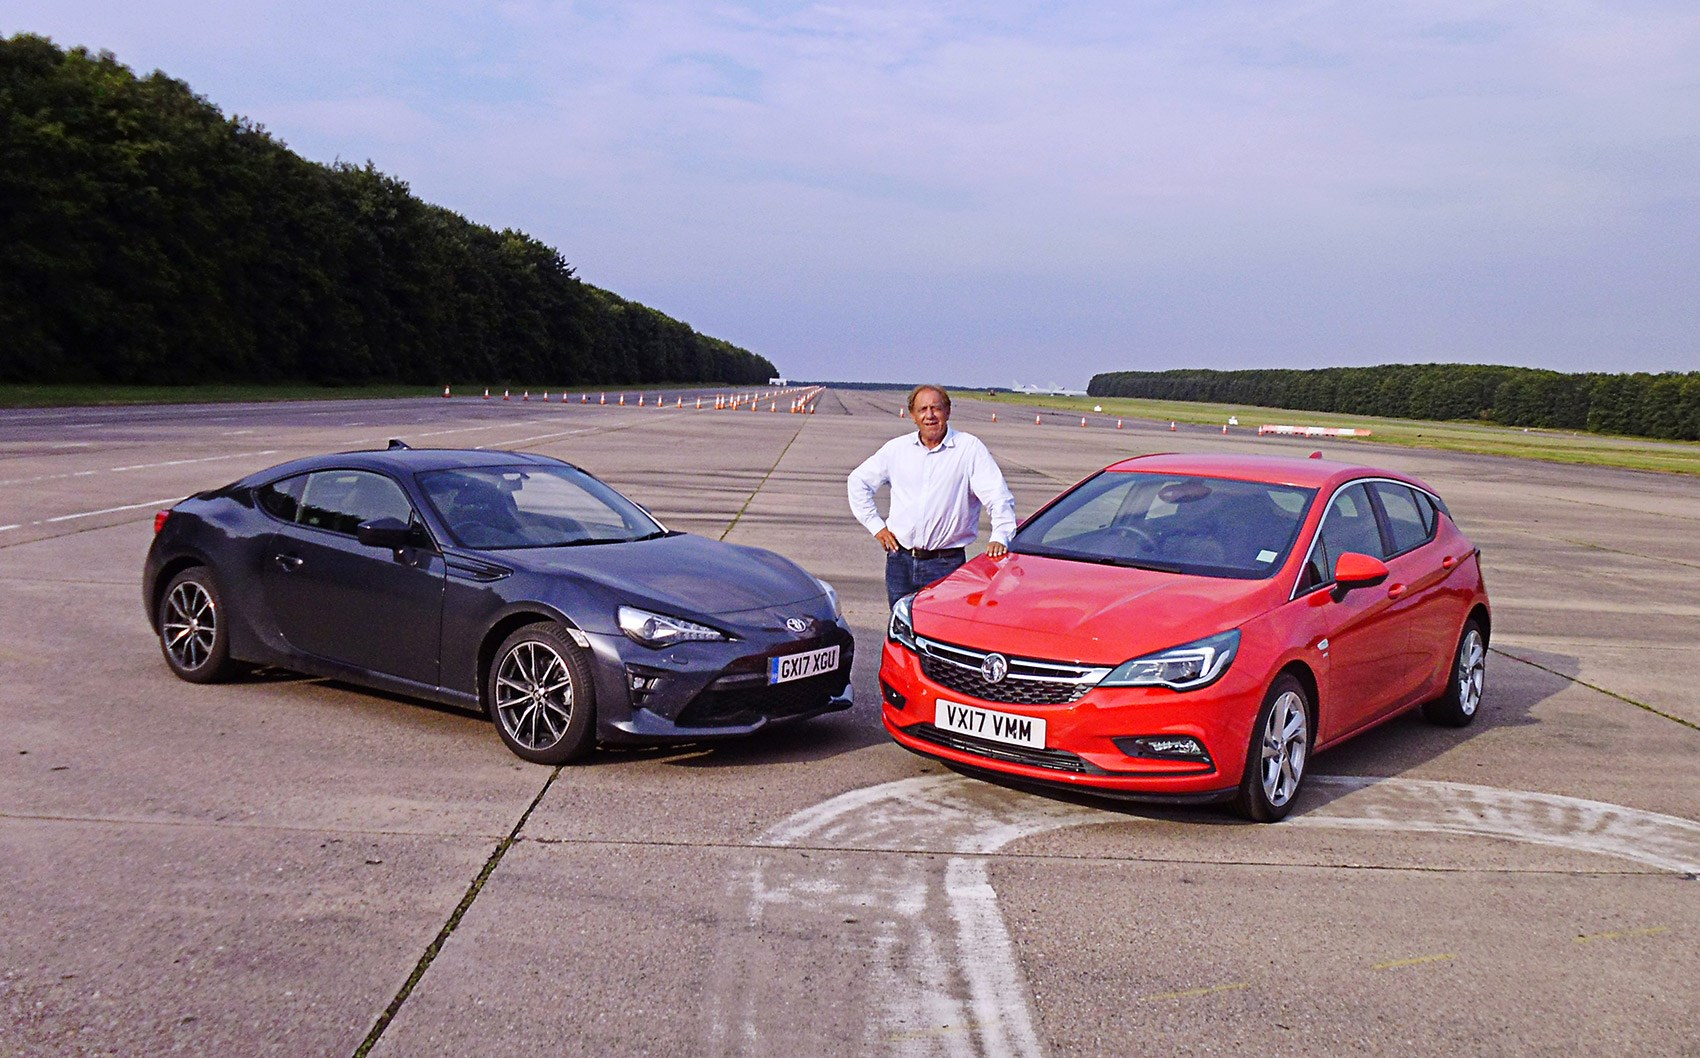 Our Toyota Gt86 Daily Driver And F1 Coach Rob Wilson S Vauxhall Astra